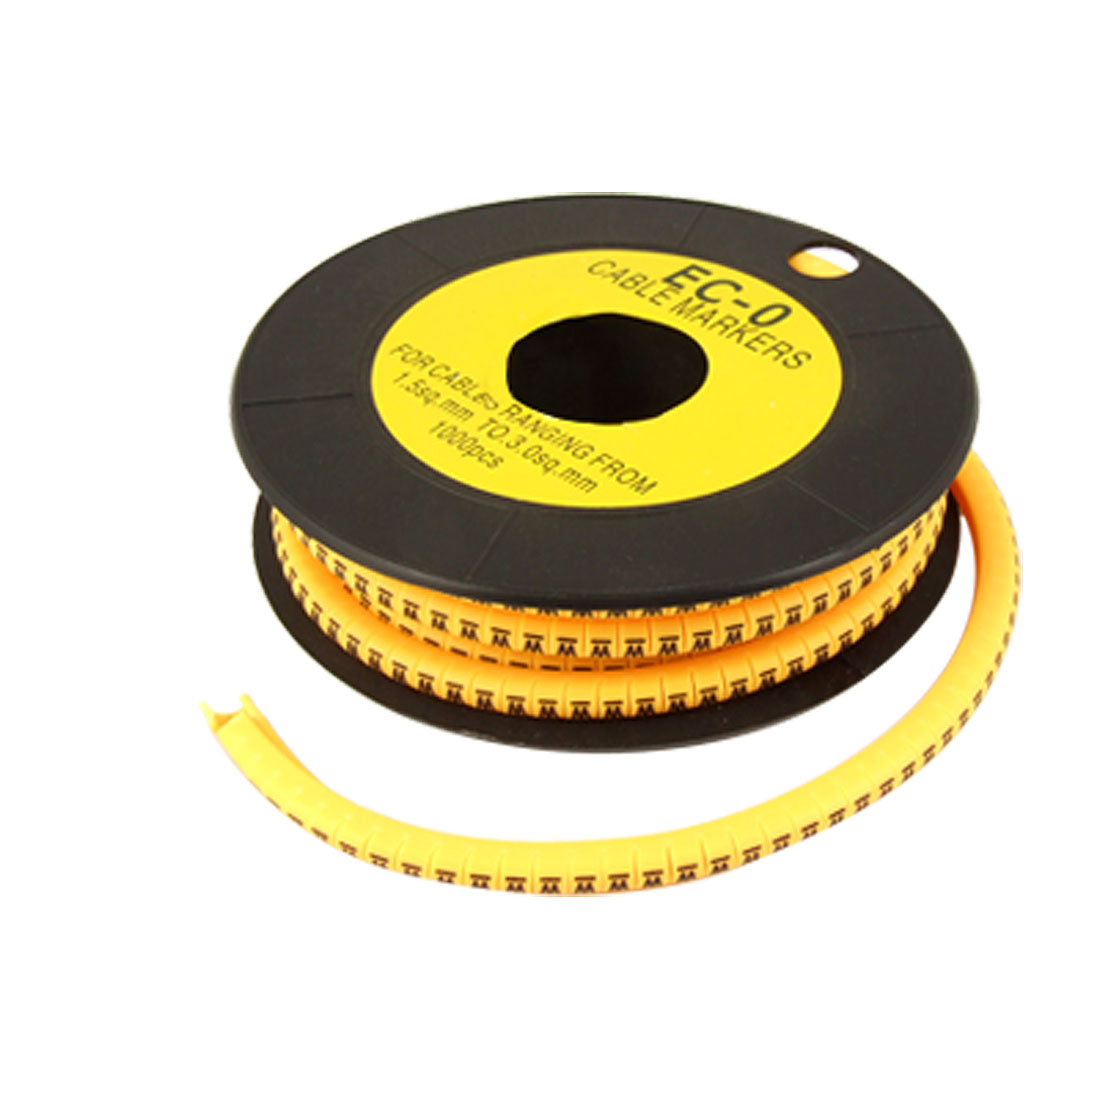 1000 Pcs Grapheme W EO-O Type Cable Marking Markers Yellow